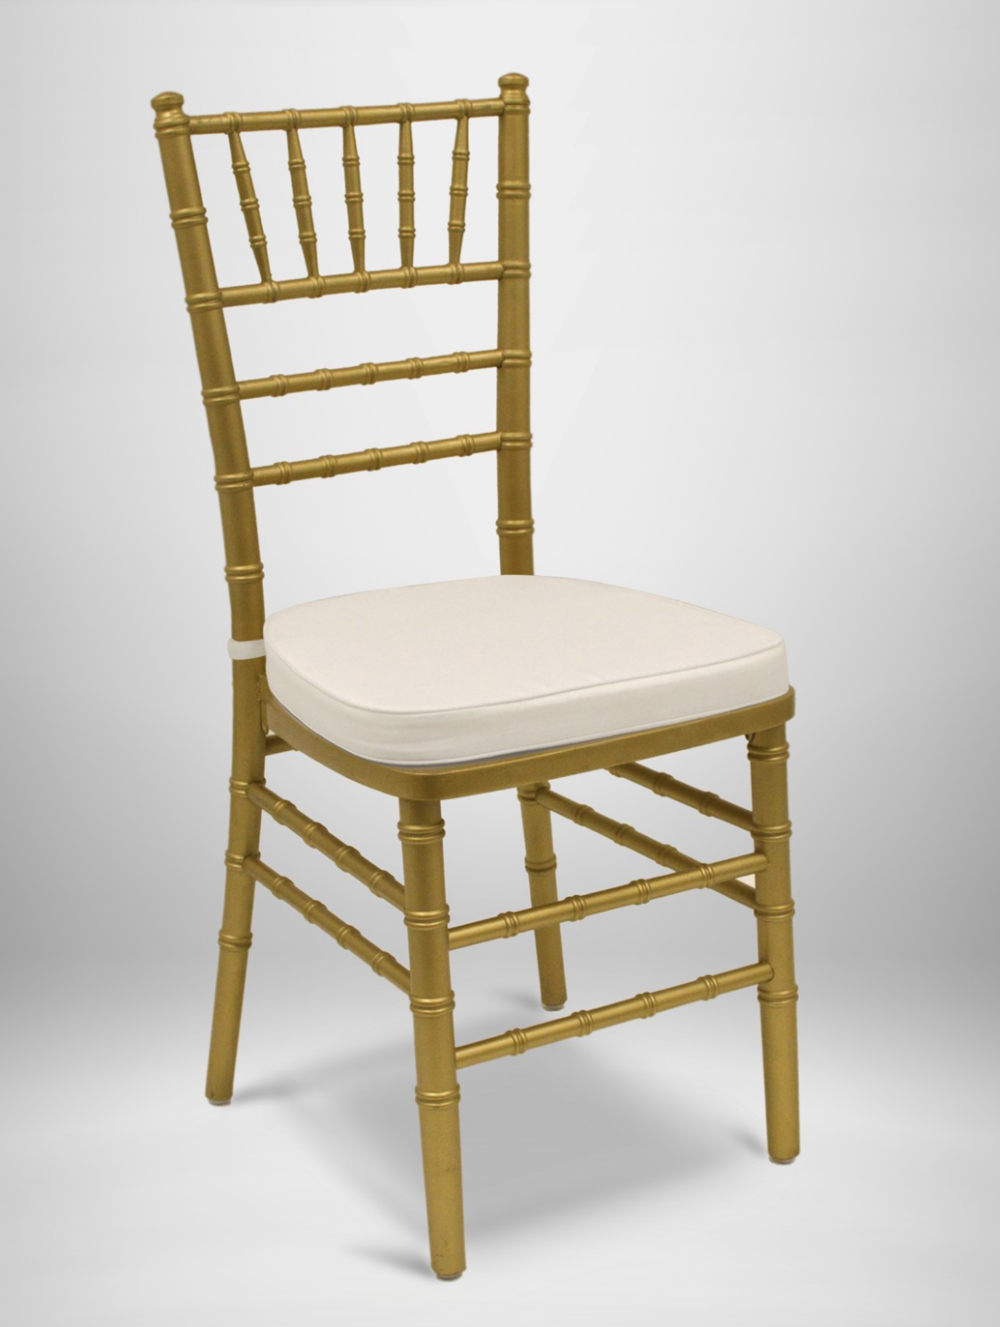 Gold Chiavari Chairs with Pads